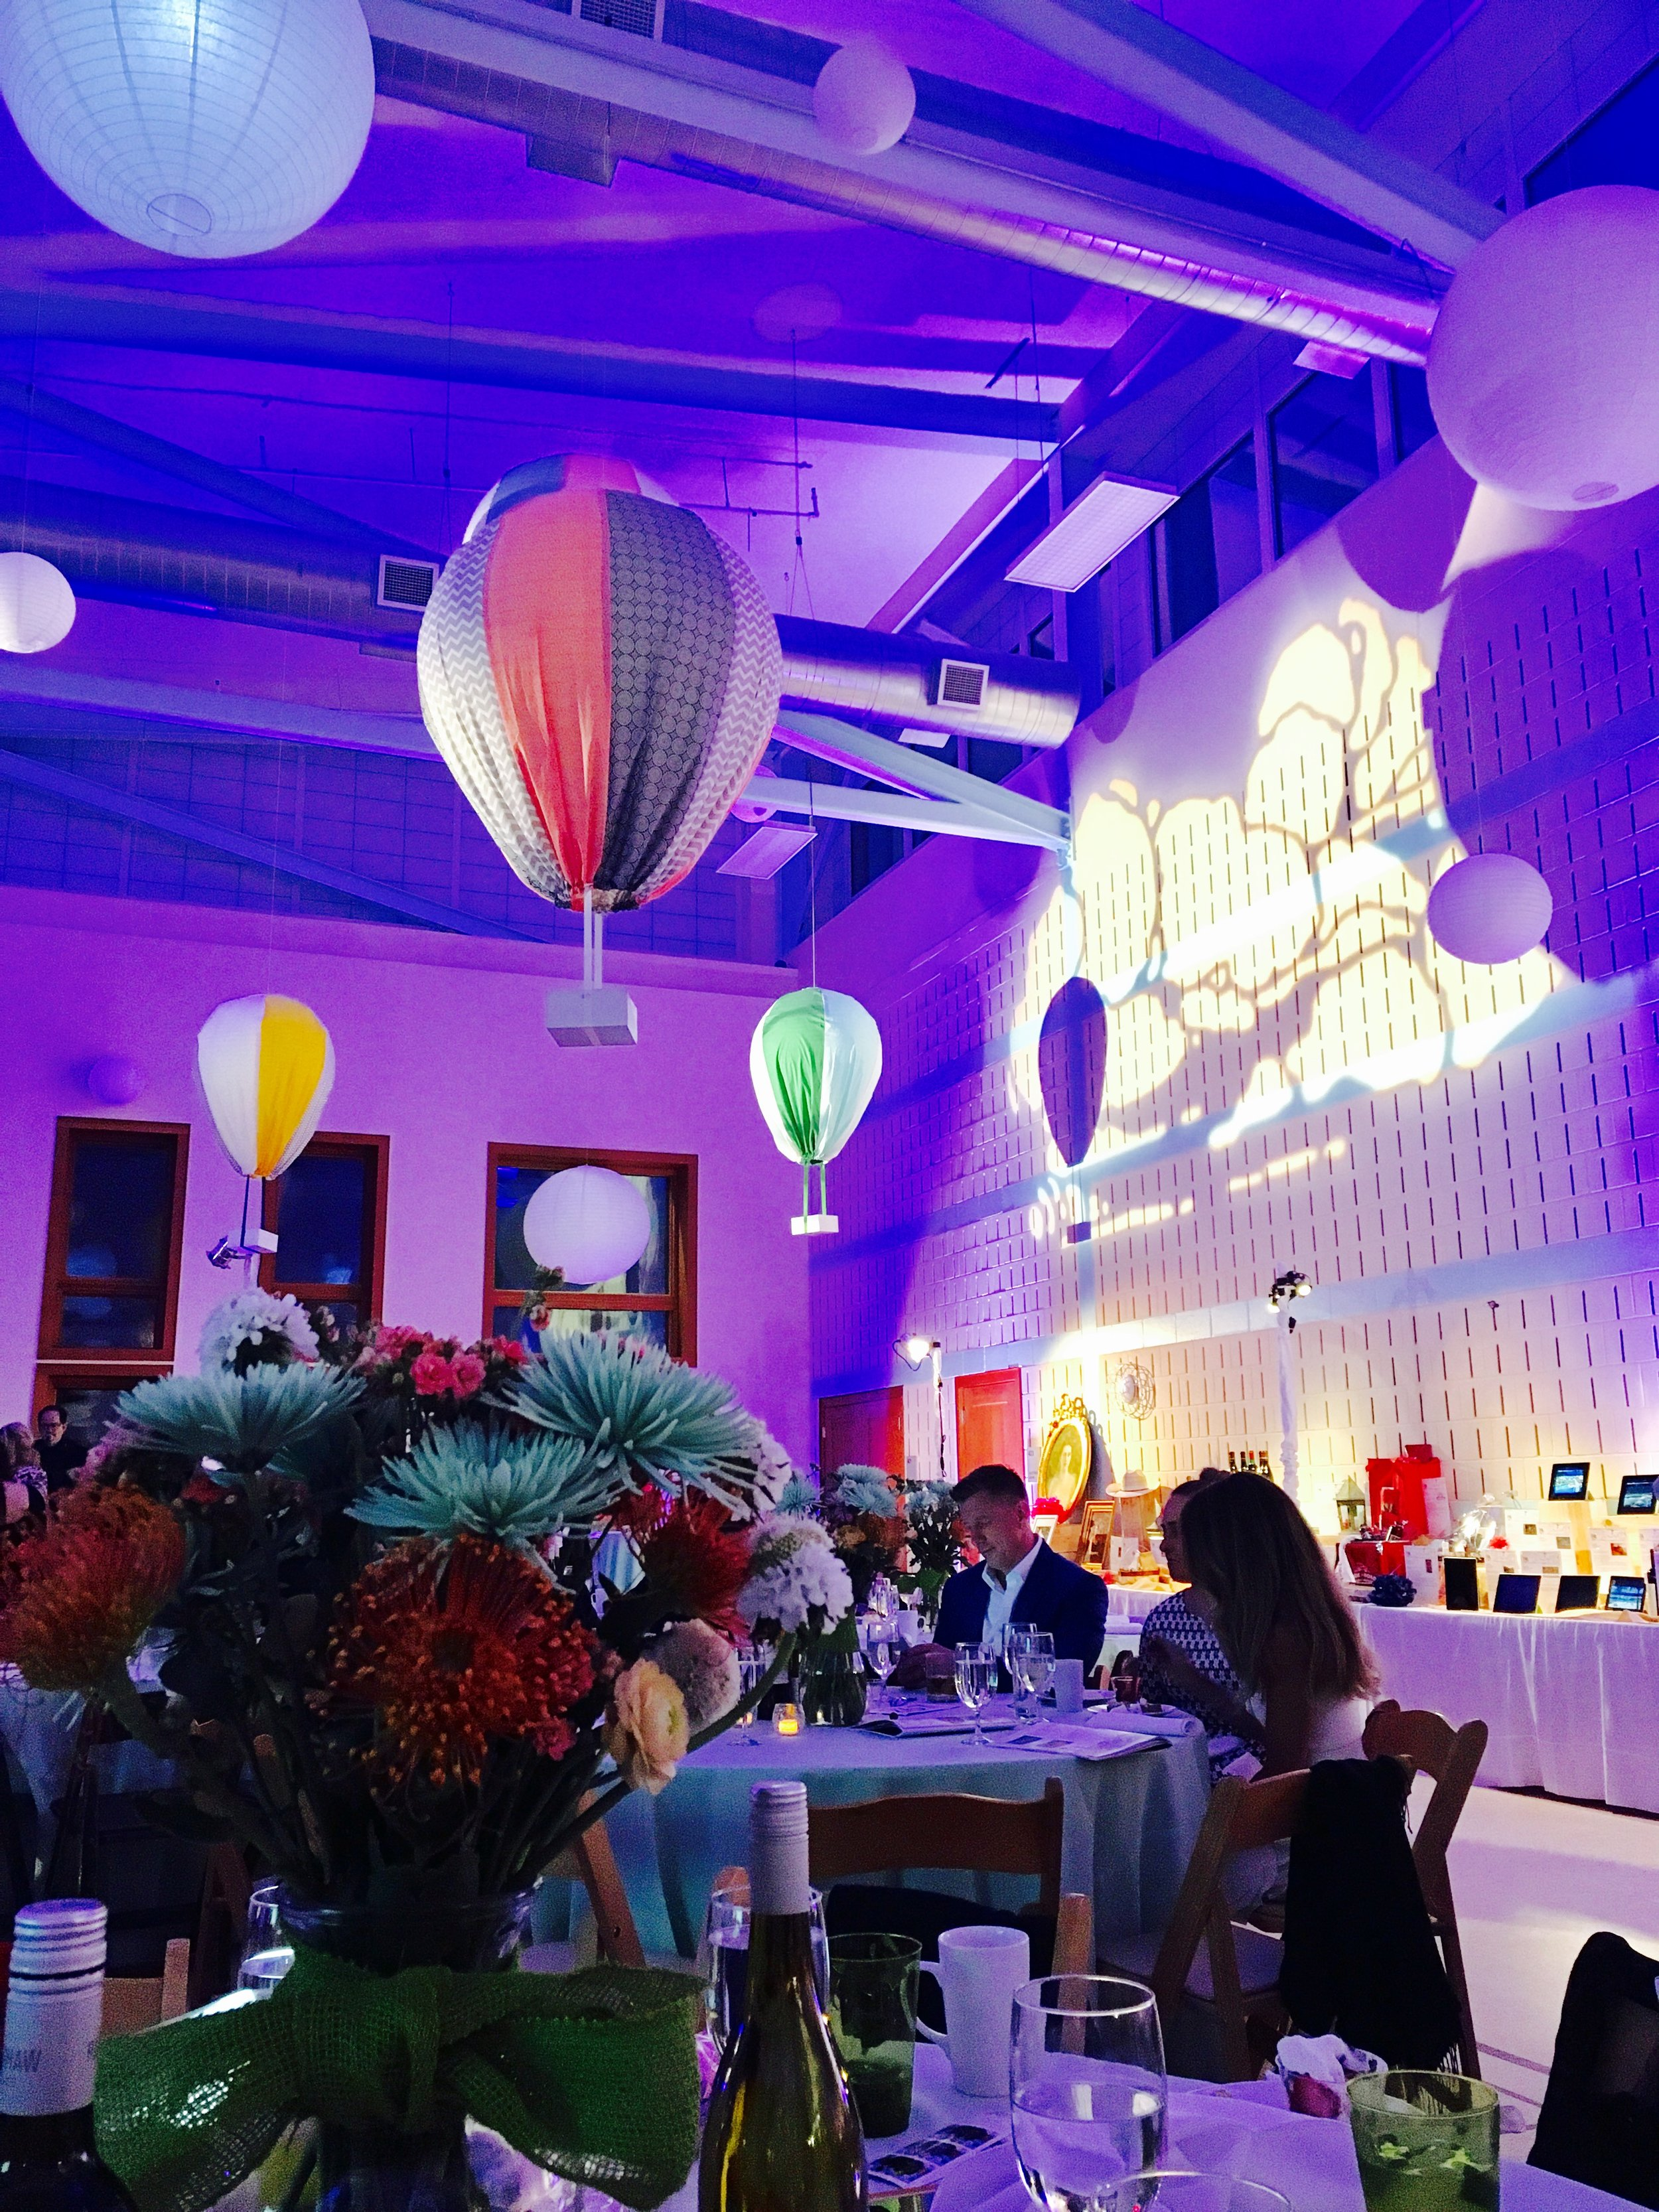 NJ+event+design+decor+custom+lighting+school+fundraiser+gala+rentals.jpg